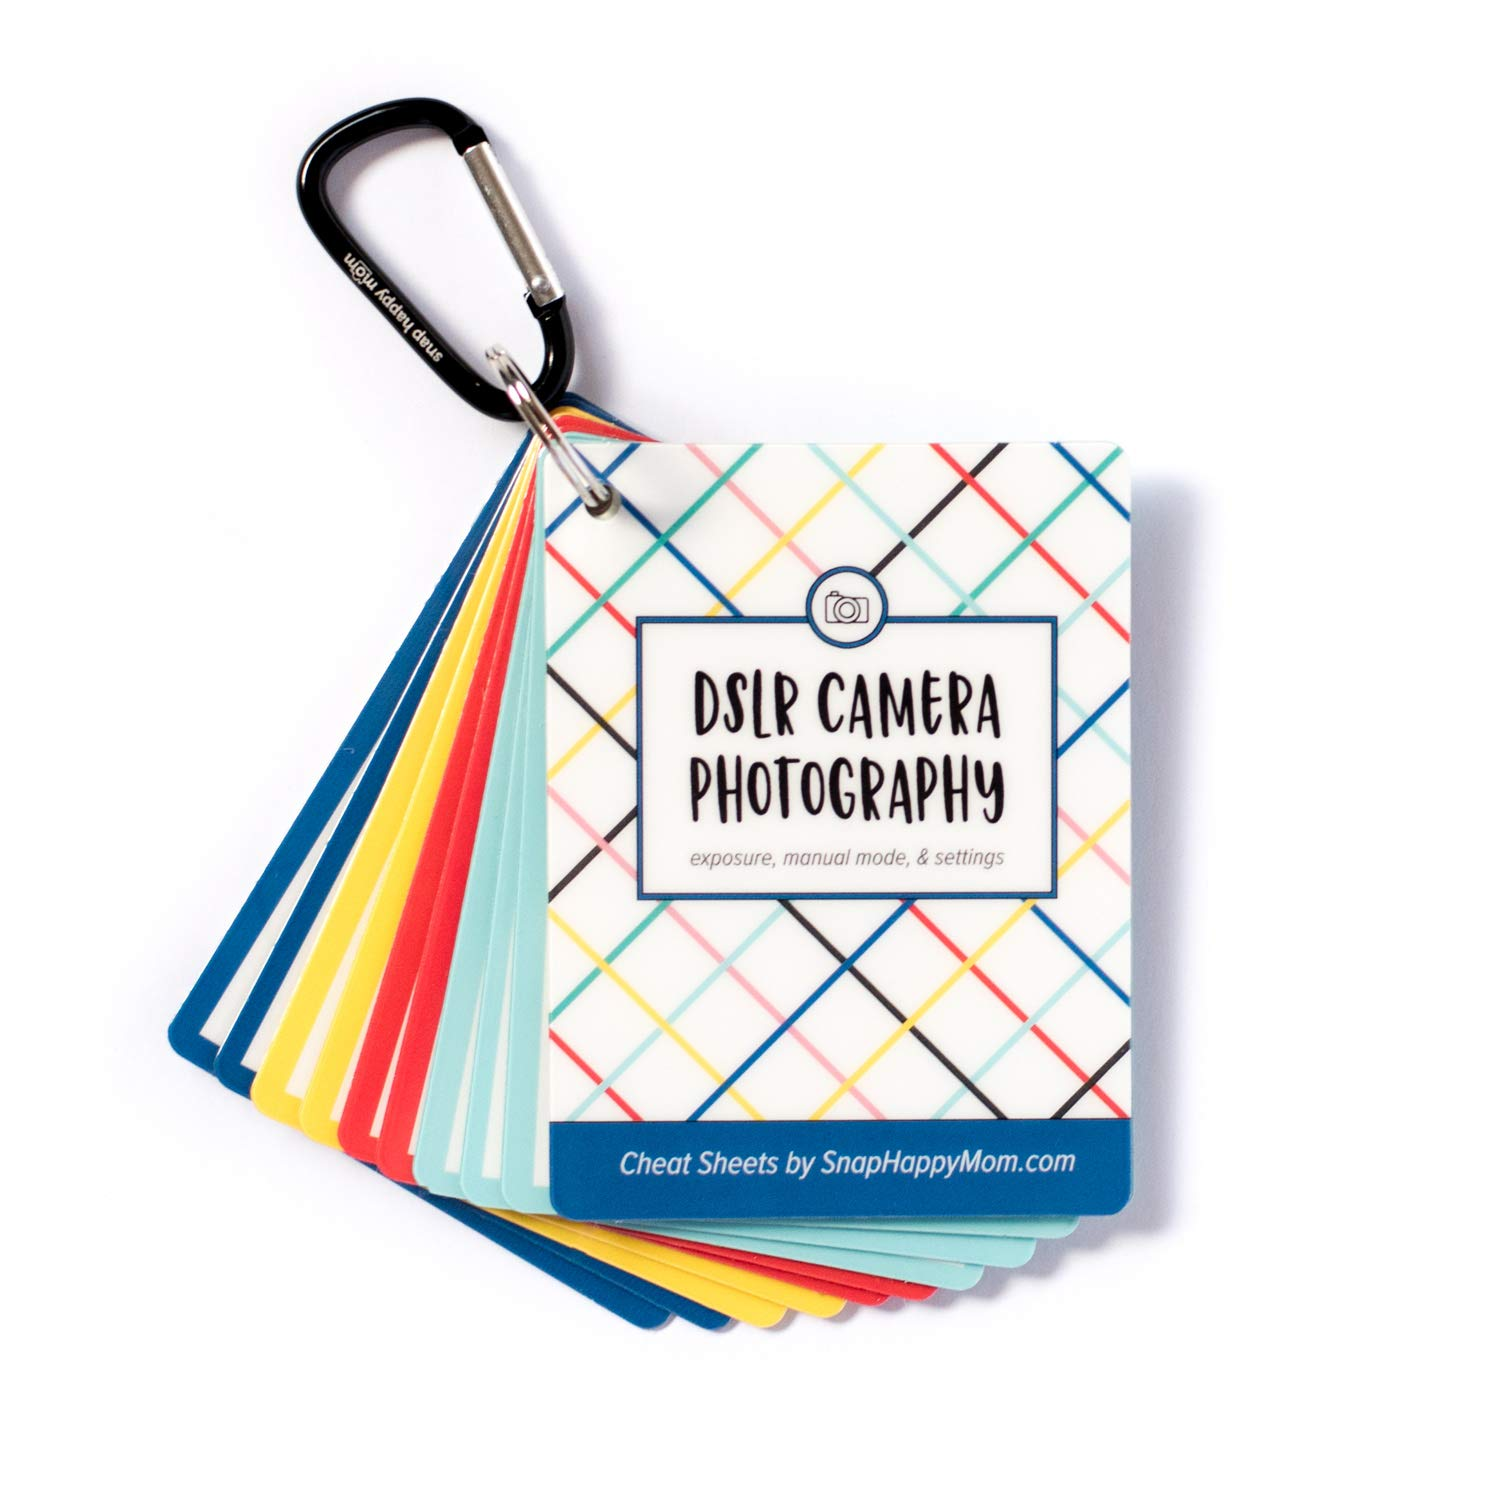 DSLR Cheat Sheet Cards for Canon, Nikon and Sony Cameras - Plastic Quick Reference Photography Cards | Camera Settings, Exposure & Manual Mode | Snap Happy Mom by Snap Happy Mom